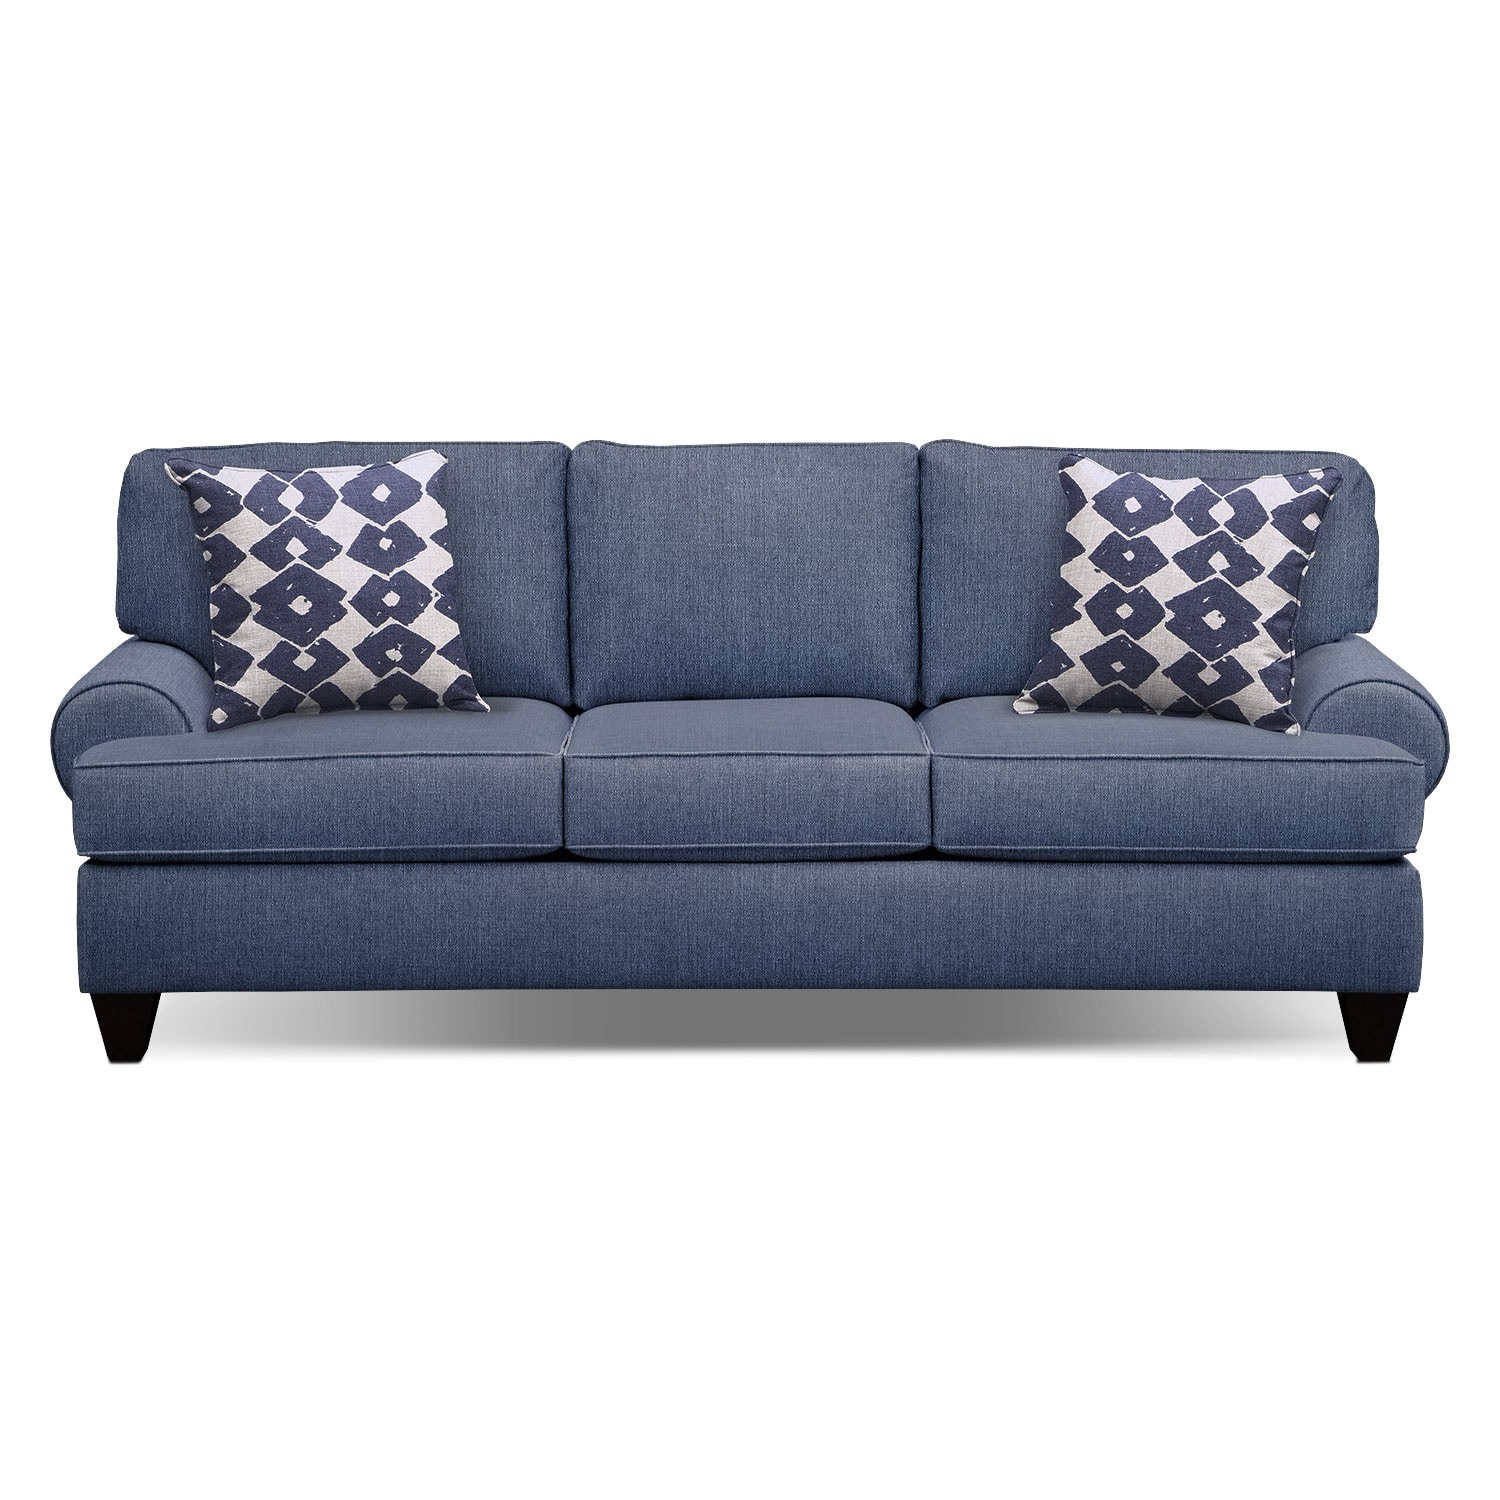 "Corner Sofa Bed Under 300: Bailey Blue 91"" Sofa"